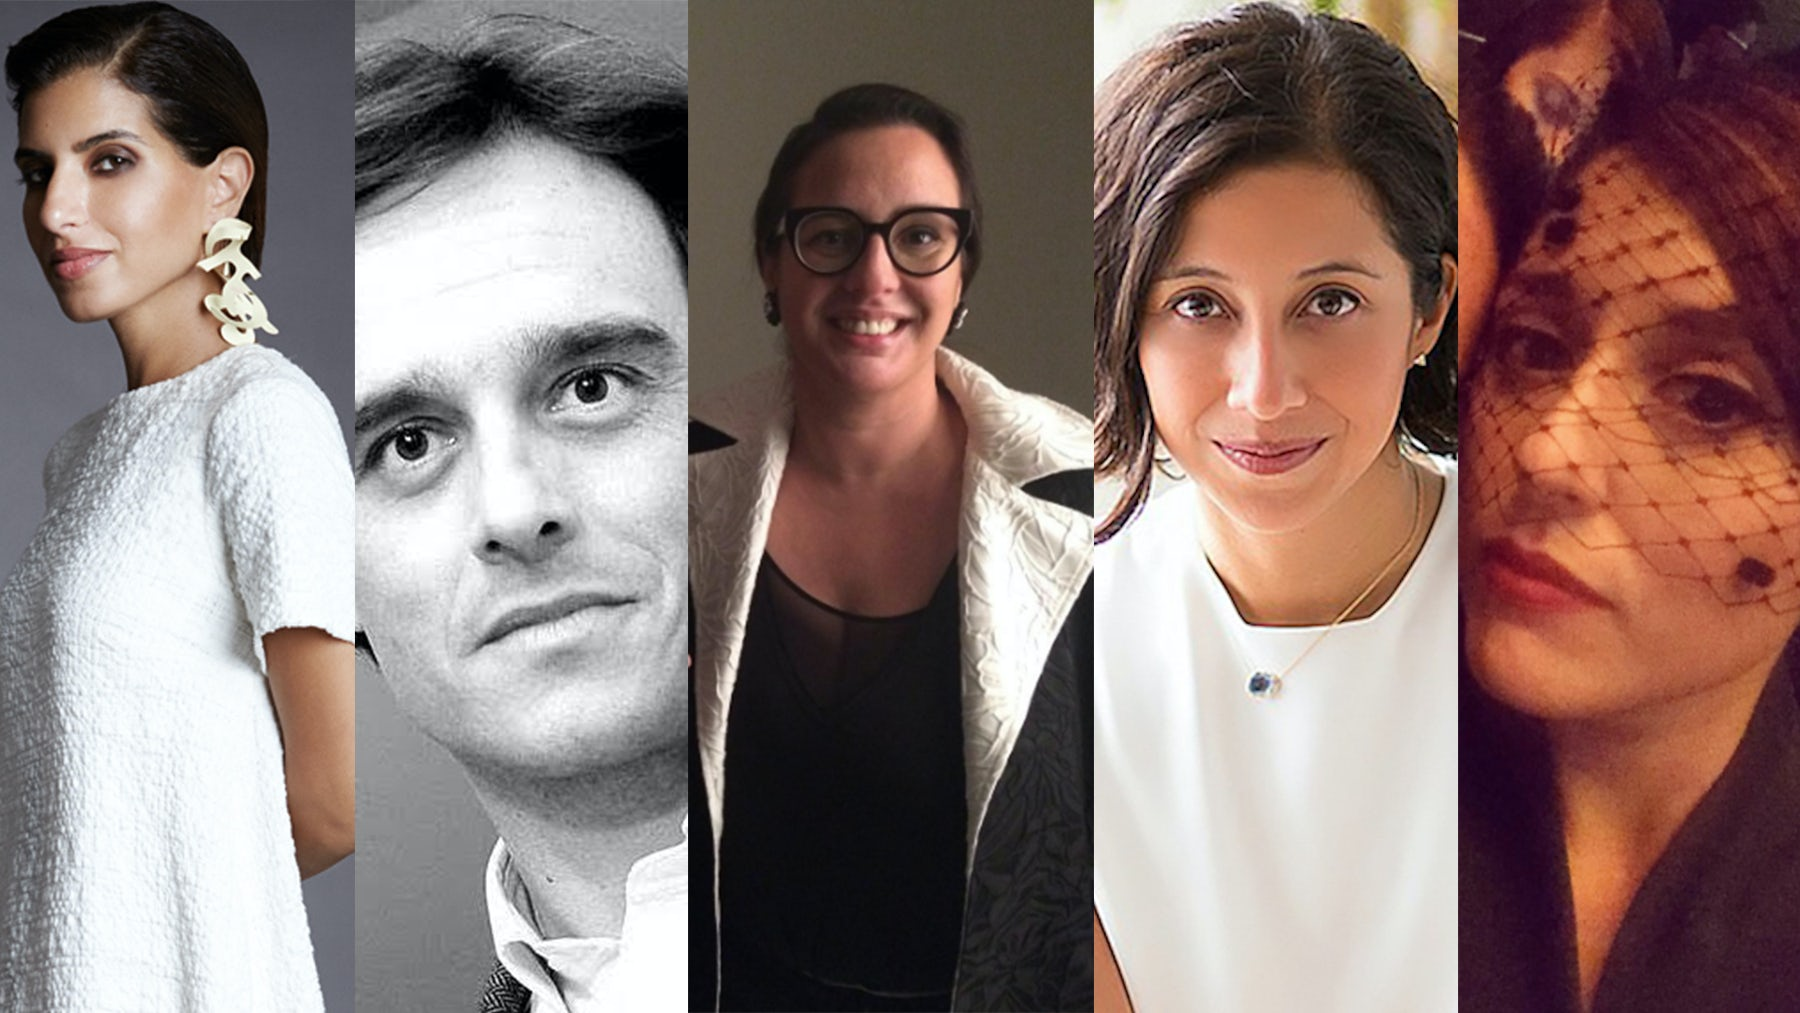 From left: Deena Aljuhani Abdulaziz, Emanuele Farneti, Silvia Rogar, Karla Martinez and Eugenia de la Torriente | Sources: Courtesty, Instagram